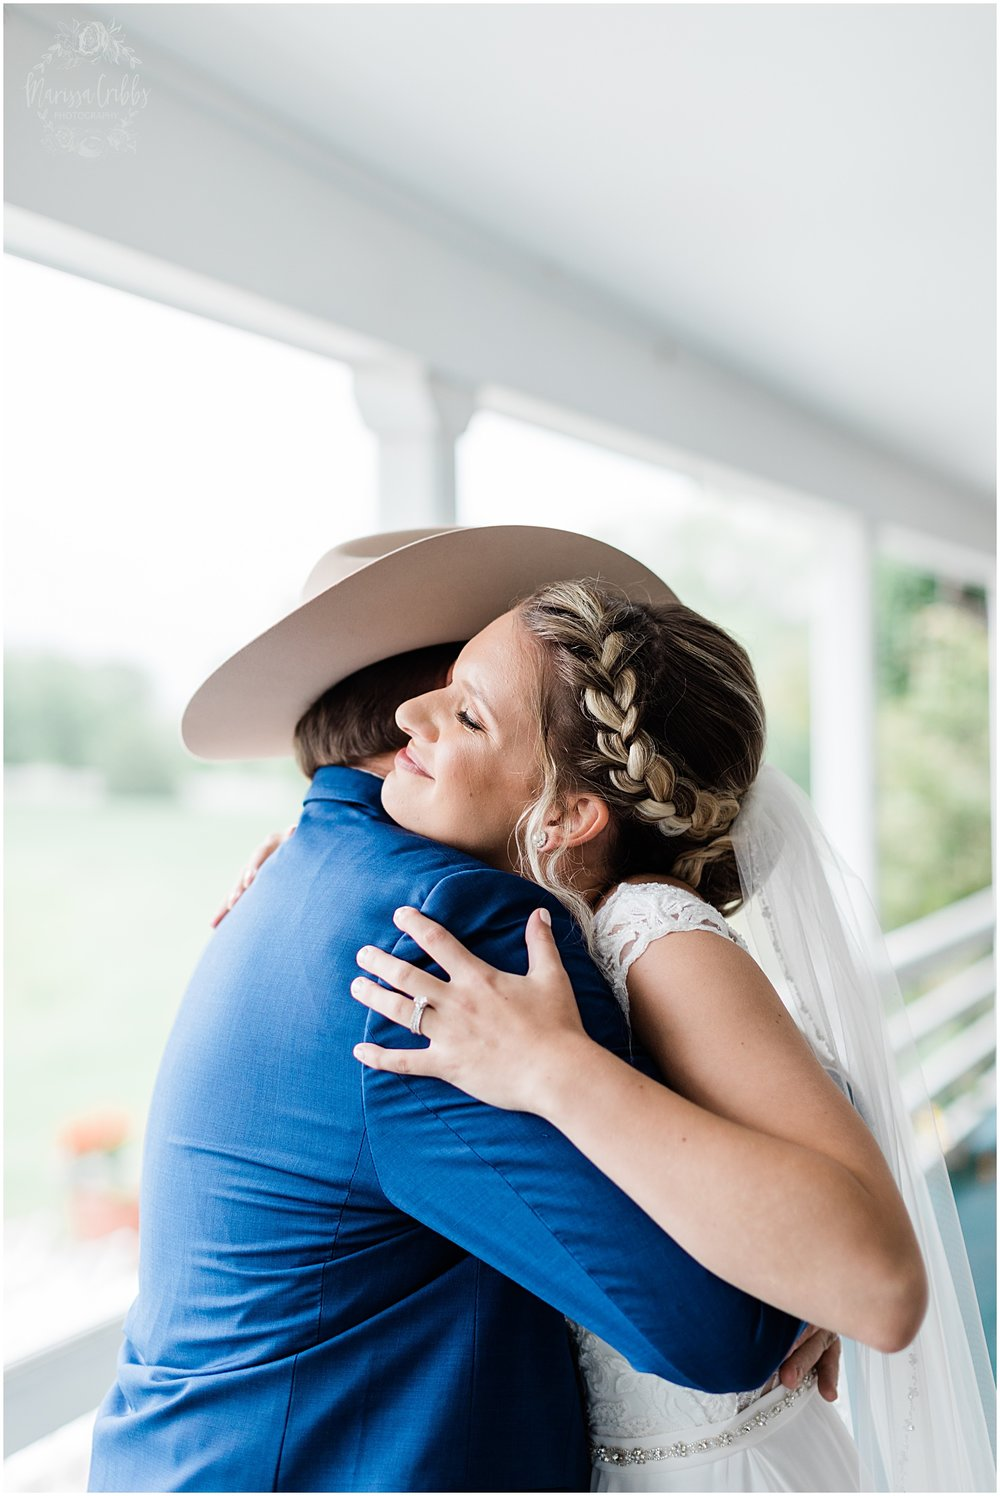 ROUNKLES WEDDING | MARISSA CRIBBS PHOTOGRAPHY | MILDALE FARM_6099.jpg